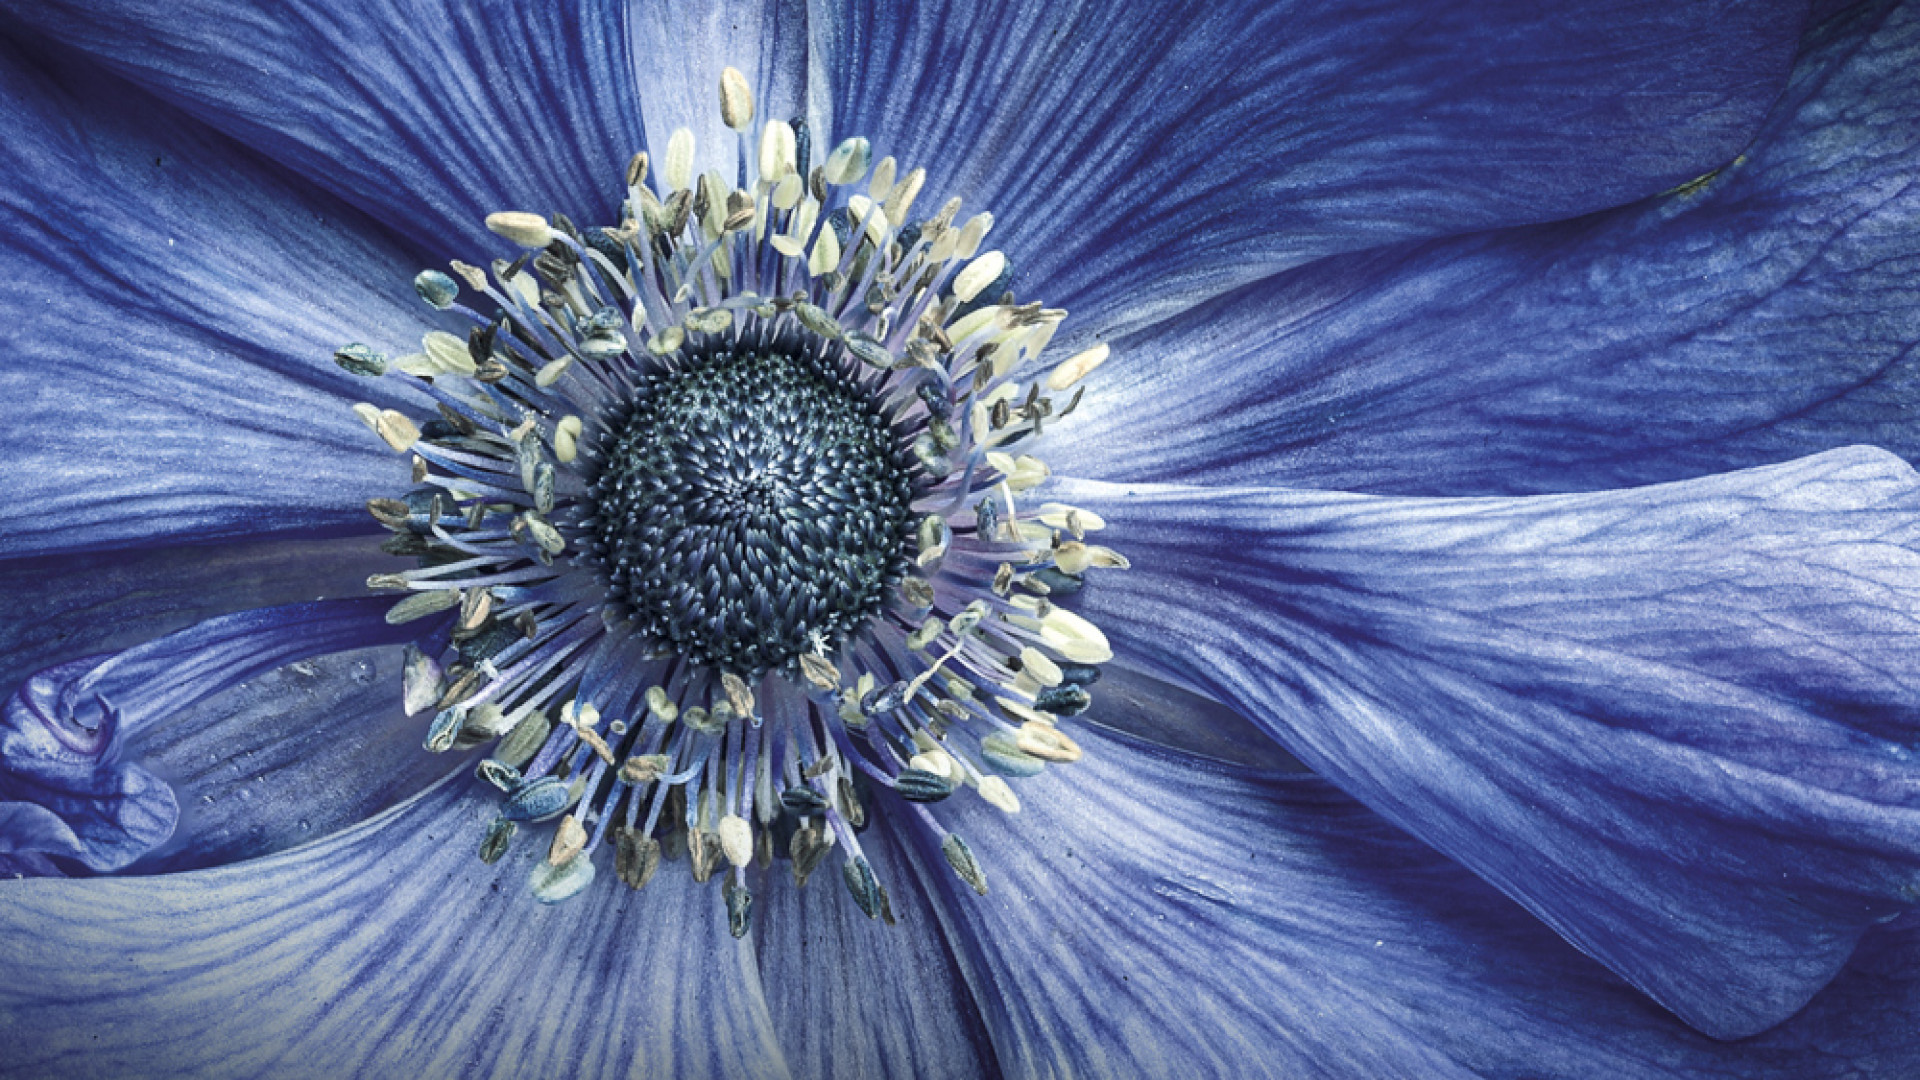 Close-up of an anemone on a balcony in Manchester, UK